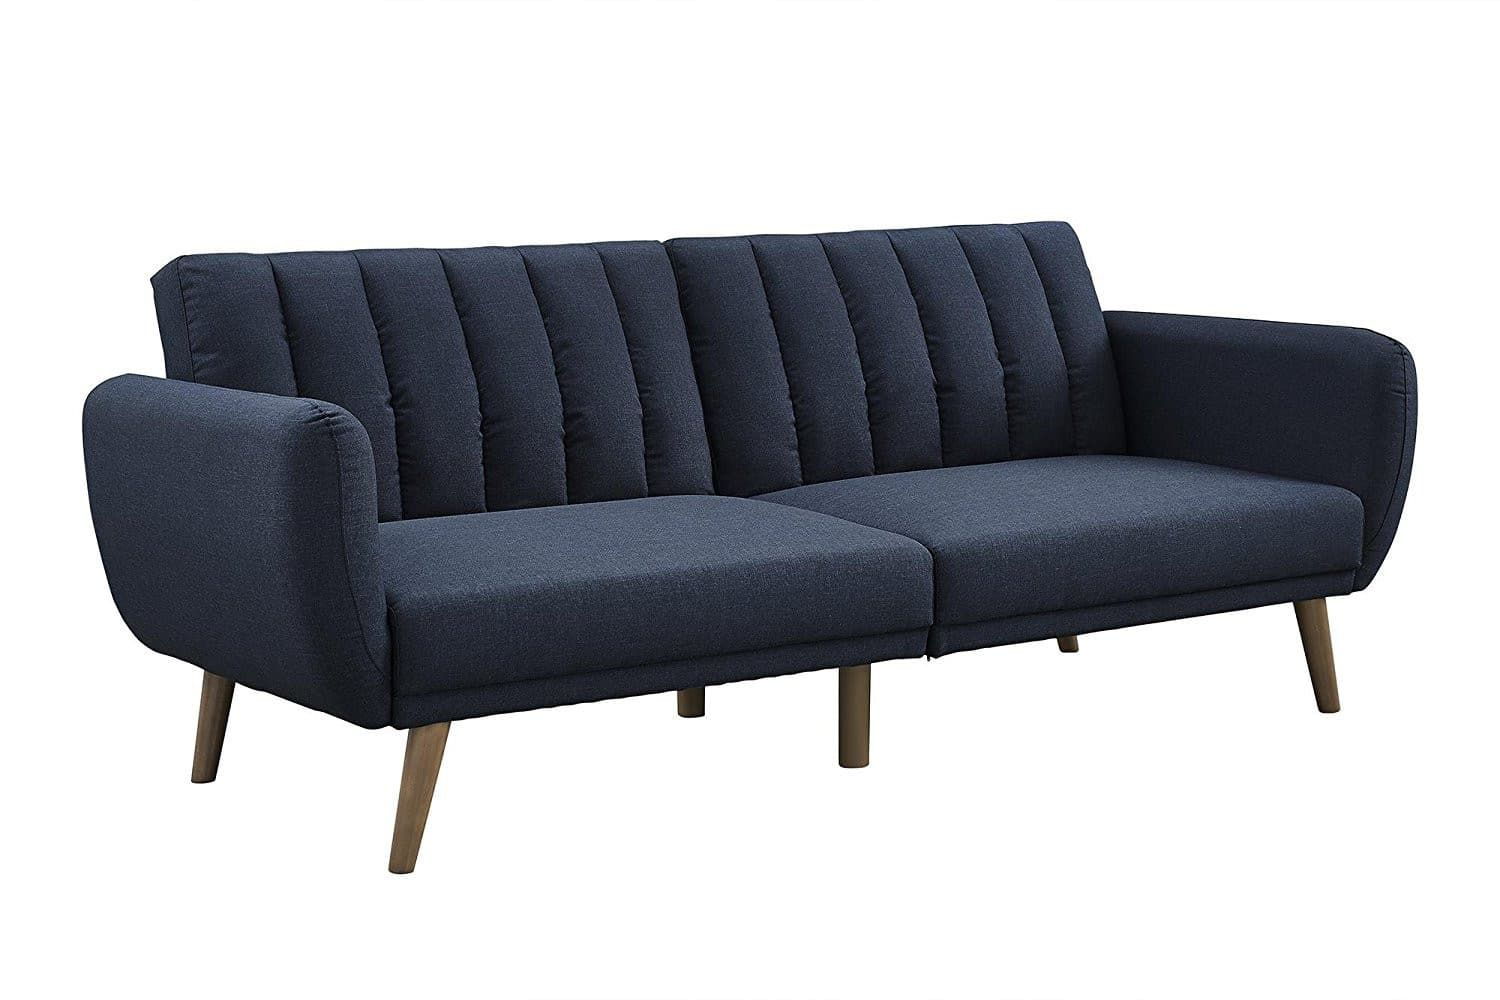 12 Inexpensive Couches That Look Like Theyre A Splurge